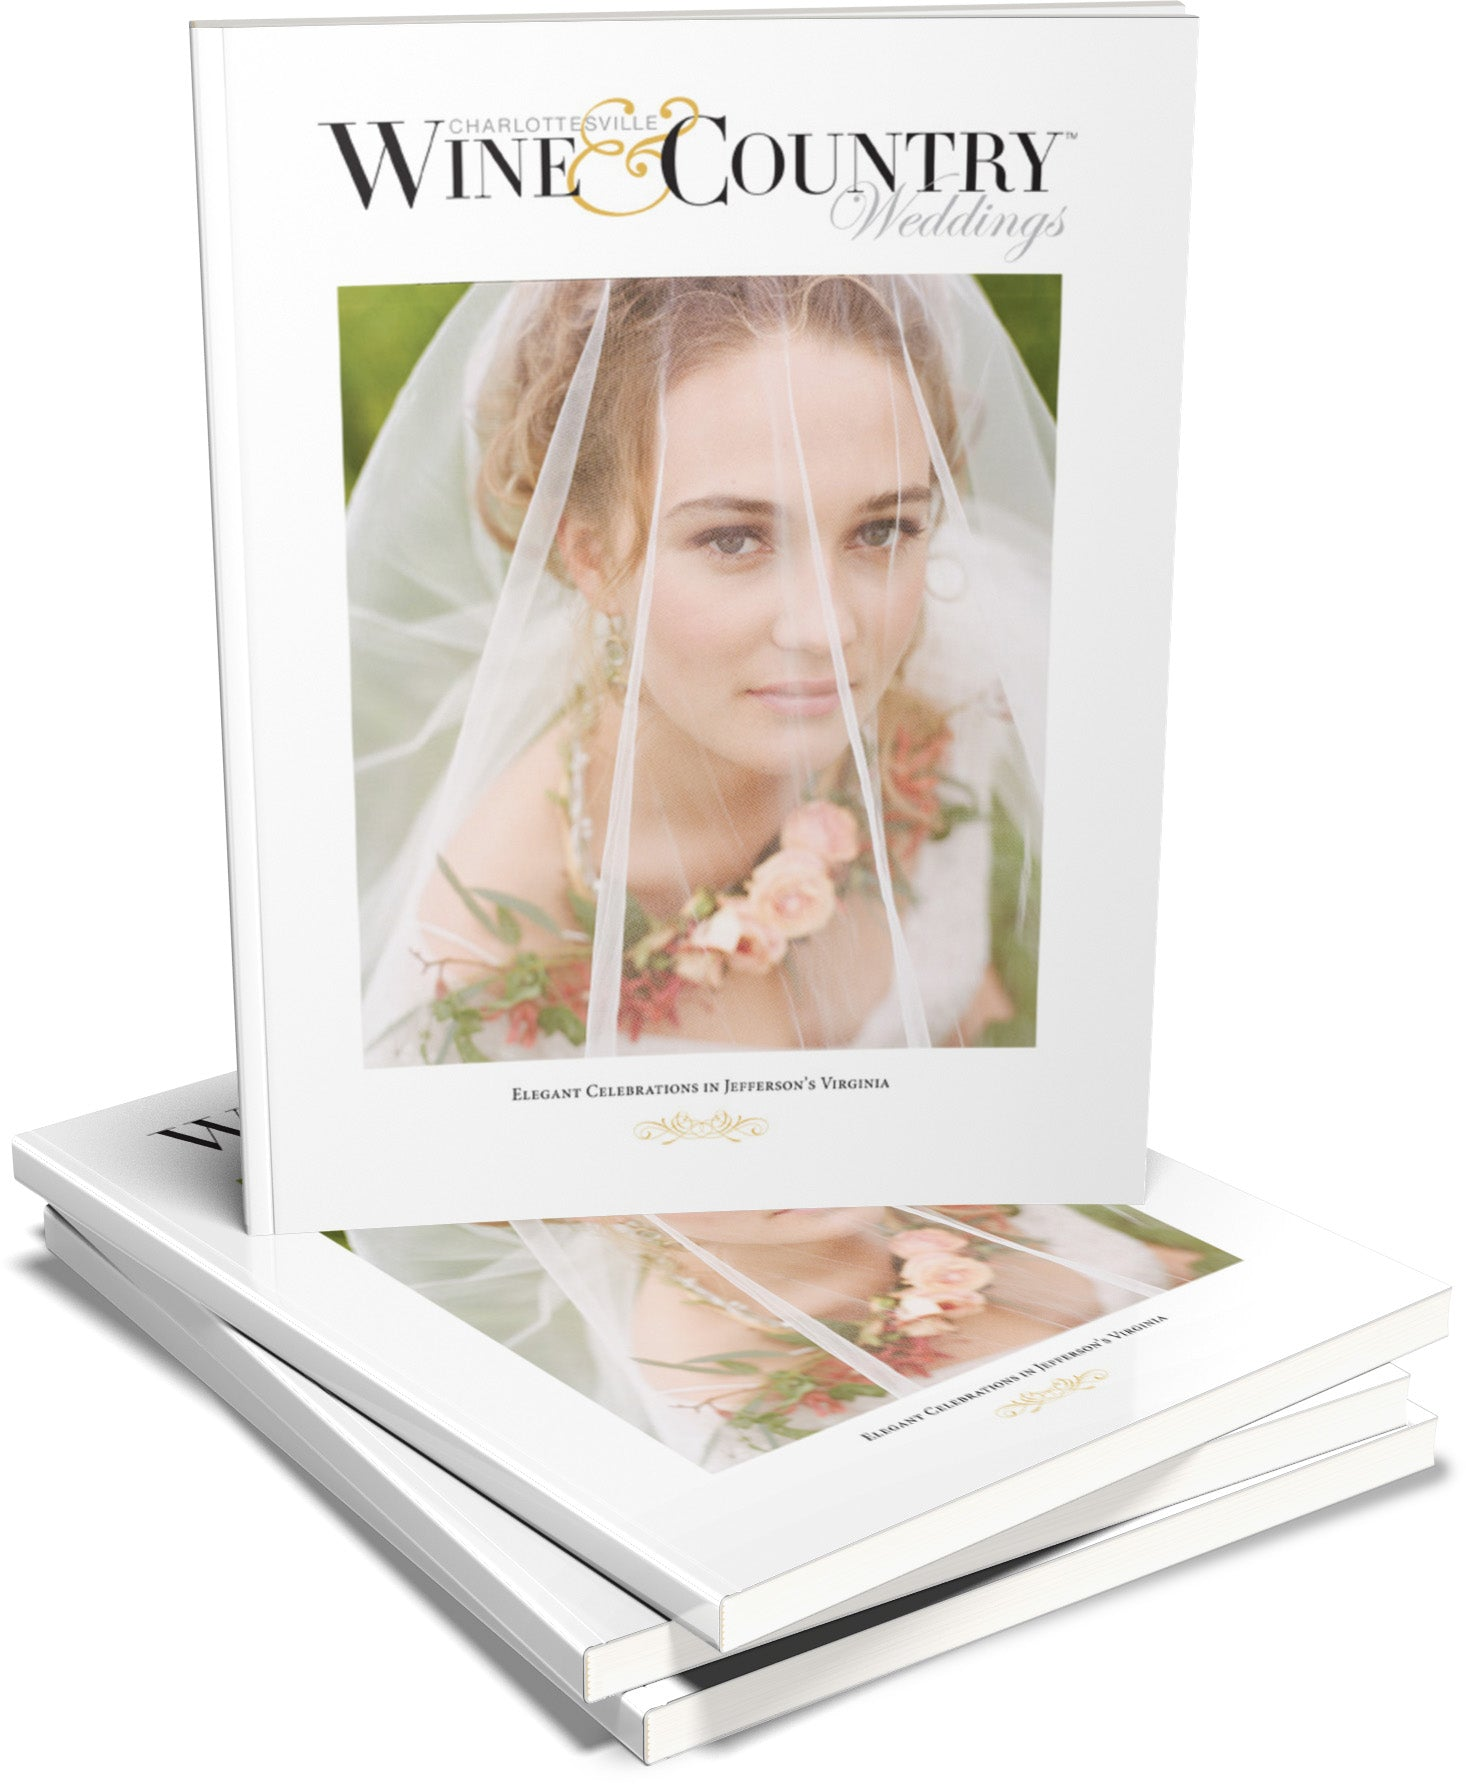 W&C Weddings Vol. 1 PRINT - SINGLE ISSUE